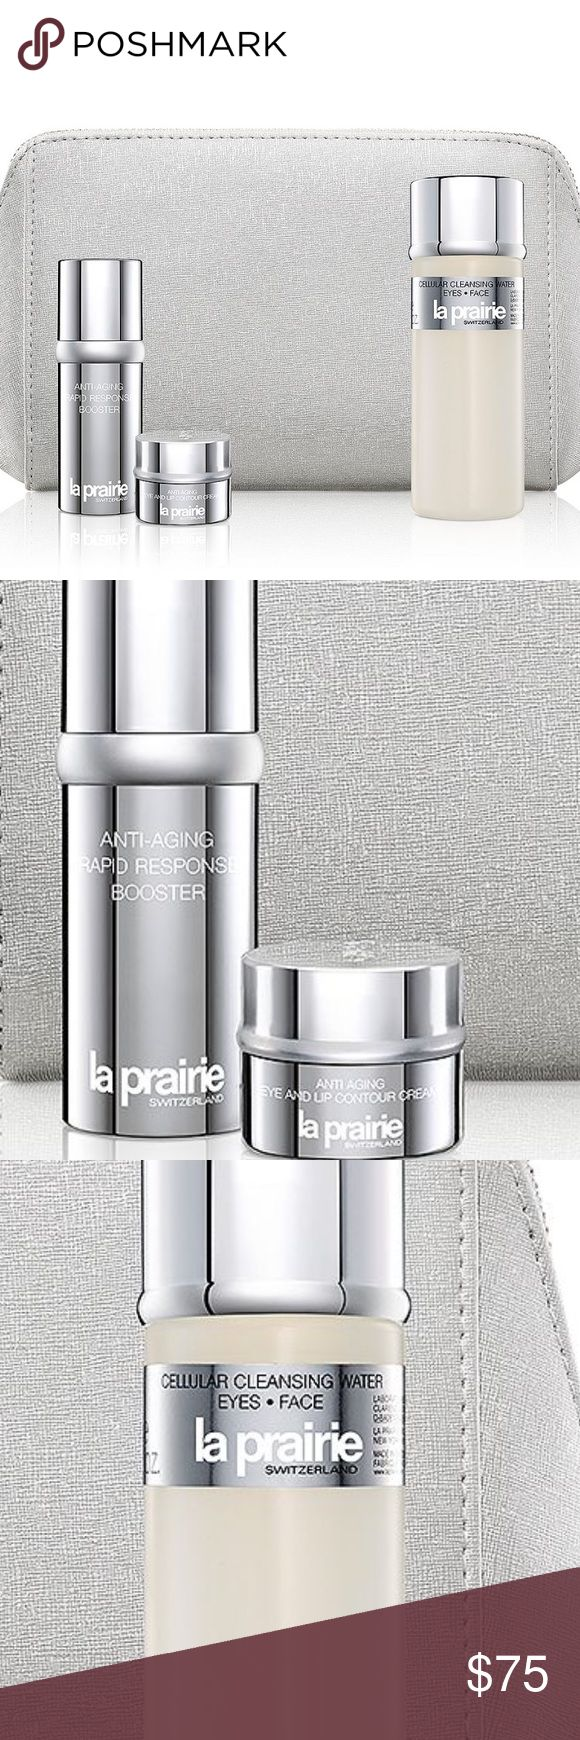 La Prarie 4 piece set Anti- Wrinkle Essentials Gift, featuring a full-size 2 oz. Cellular Cleansing Water for Eyes Face, deluxe samples of Anti-Aging Rapid Response Booster and Anti-Aging Eye & Lip Contour Cream, and a signature cosmetics bag. la prarie Makeup